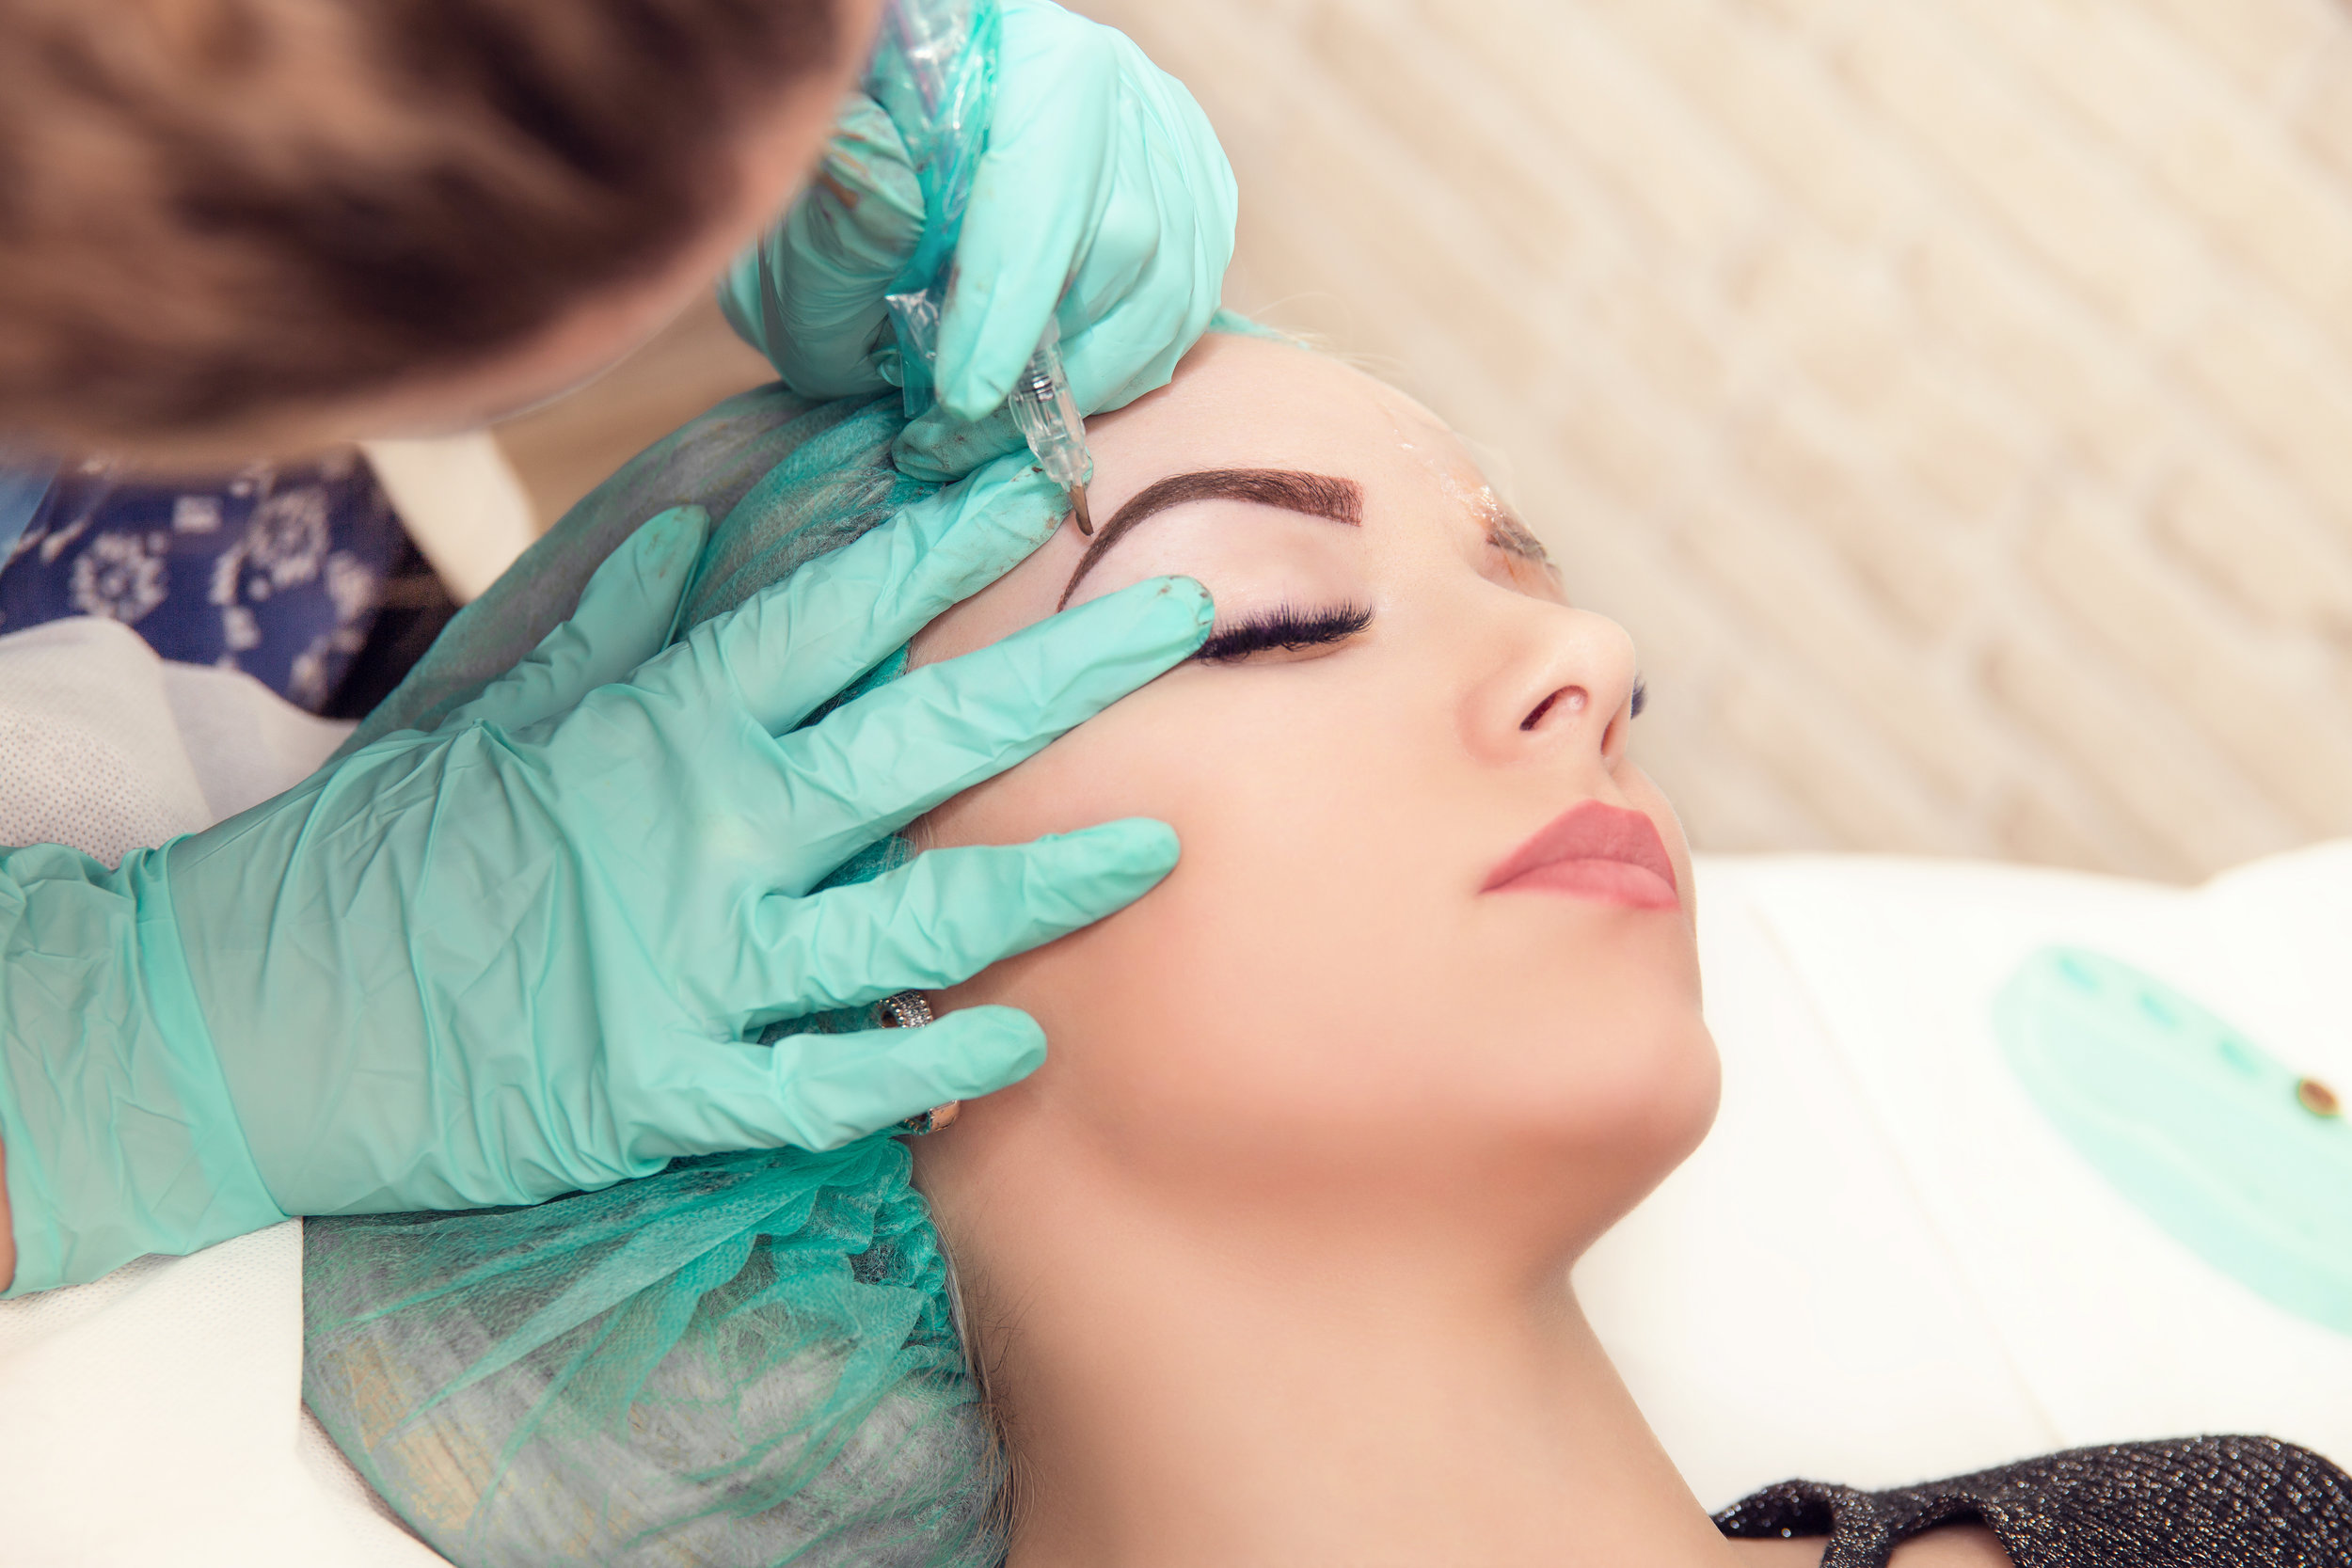 Learn the Complete art of Permanent Makeup - As a certified Permanent Make-up artist, you can charge your clients up to $300 - $600 per session. That means you if you only had 17 clients per month (less than one a day!) you'd already be over $10,000.And when you add in $200 for second visits and $350 for yearly touchups, you can truly start to see the massive income potential this highly sought-after skill demands.